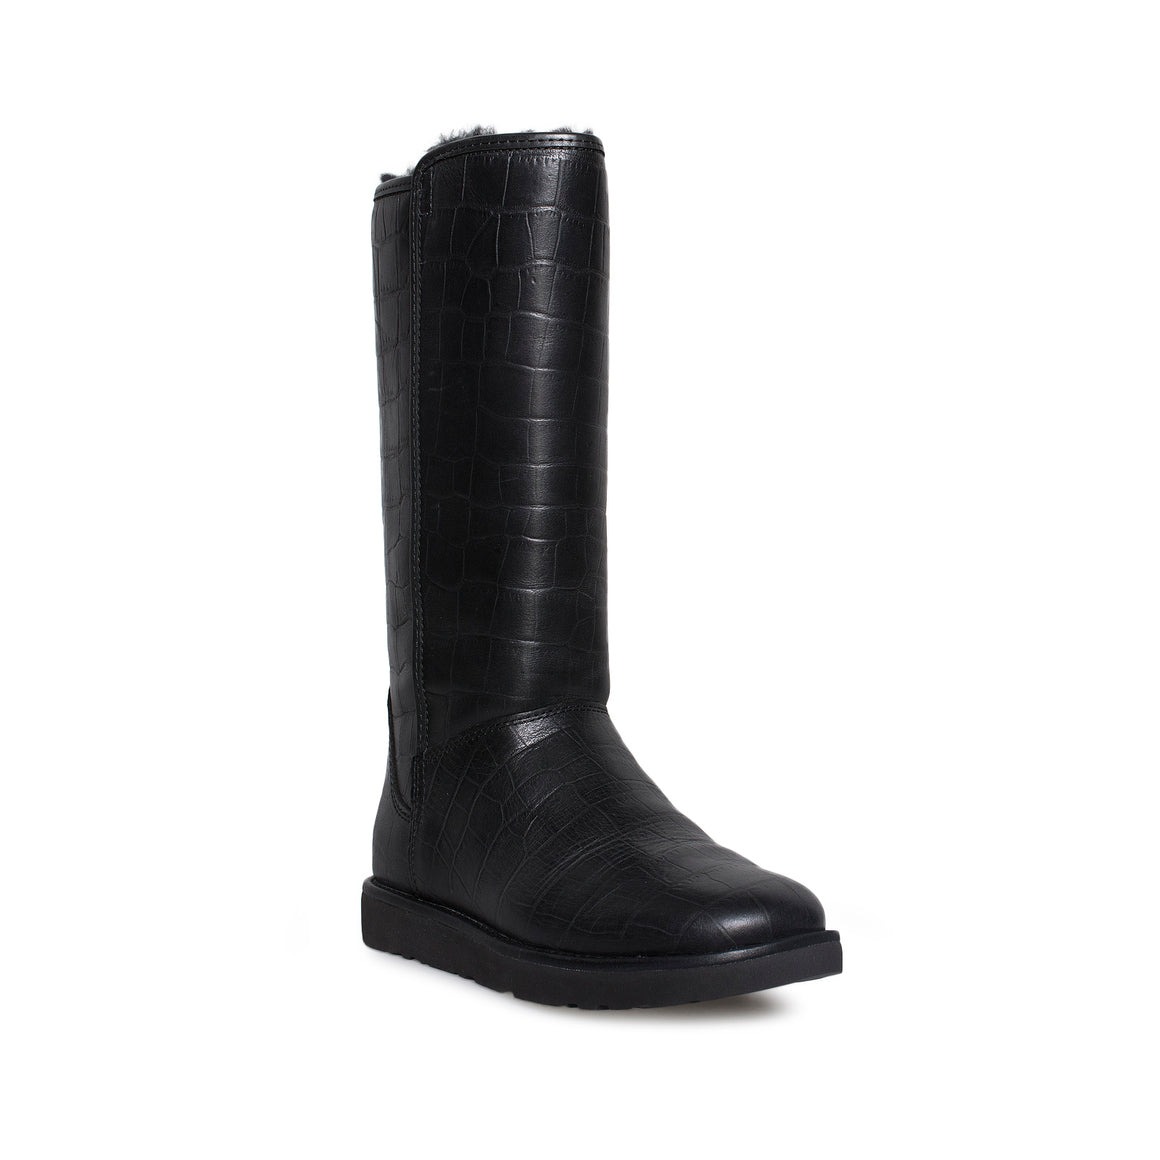 UGG Abree II Croco Black Boots